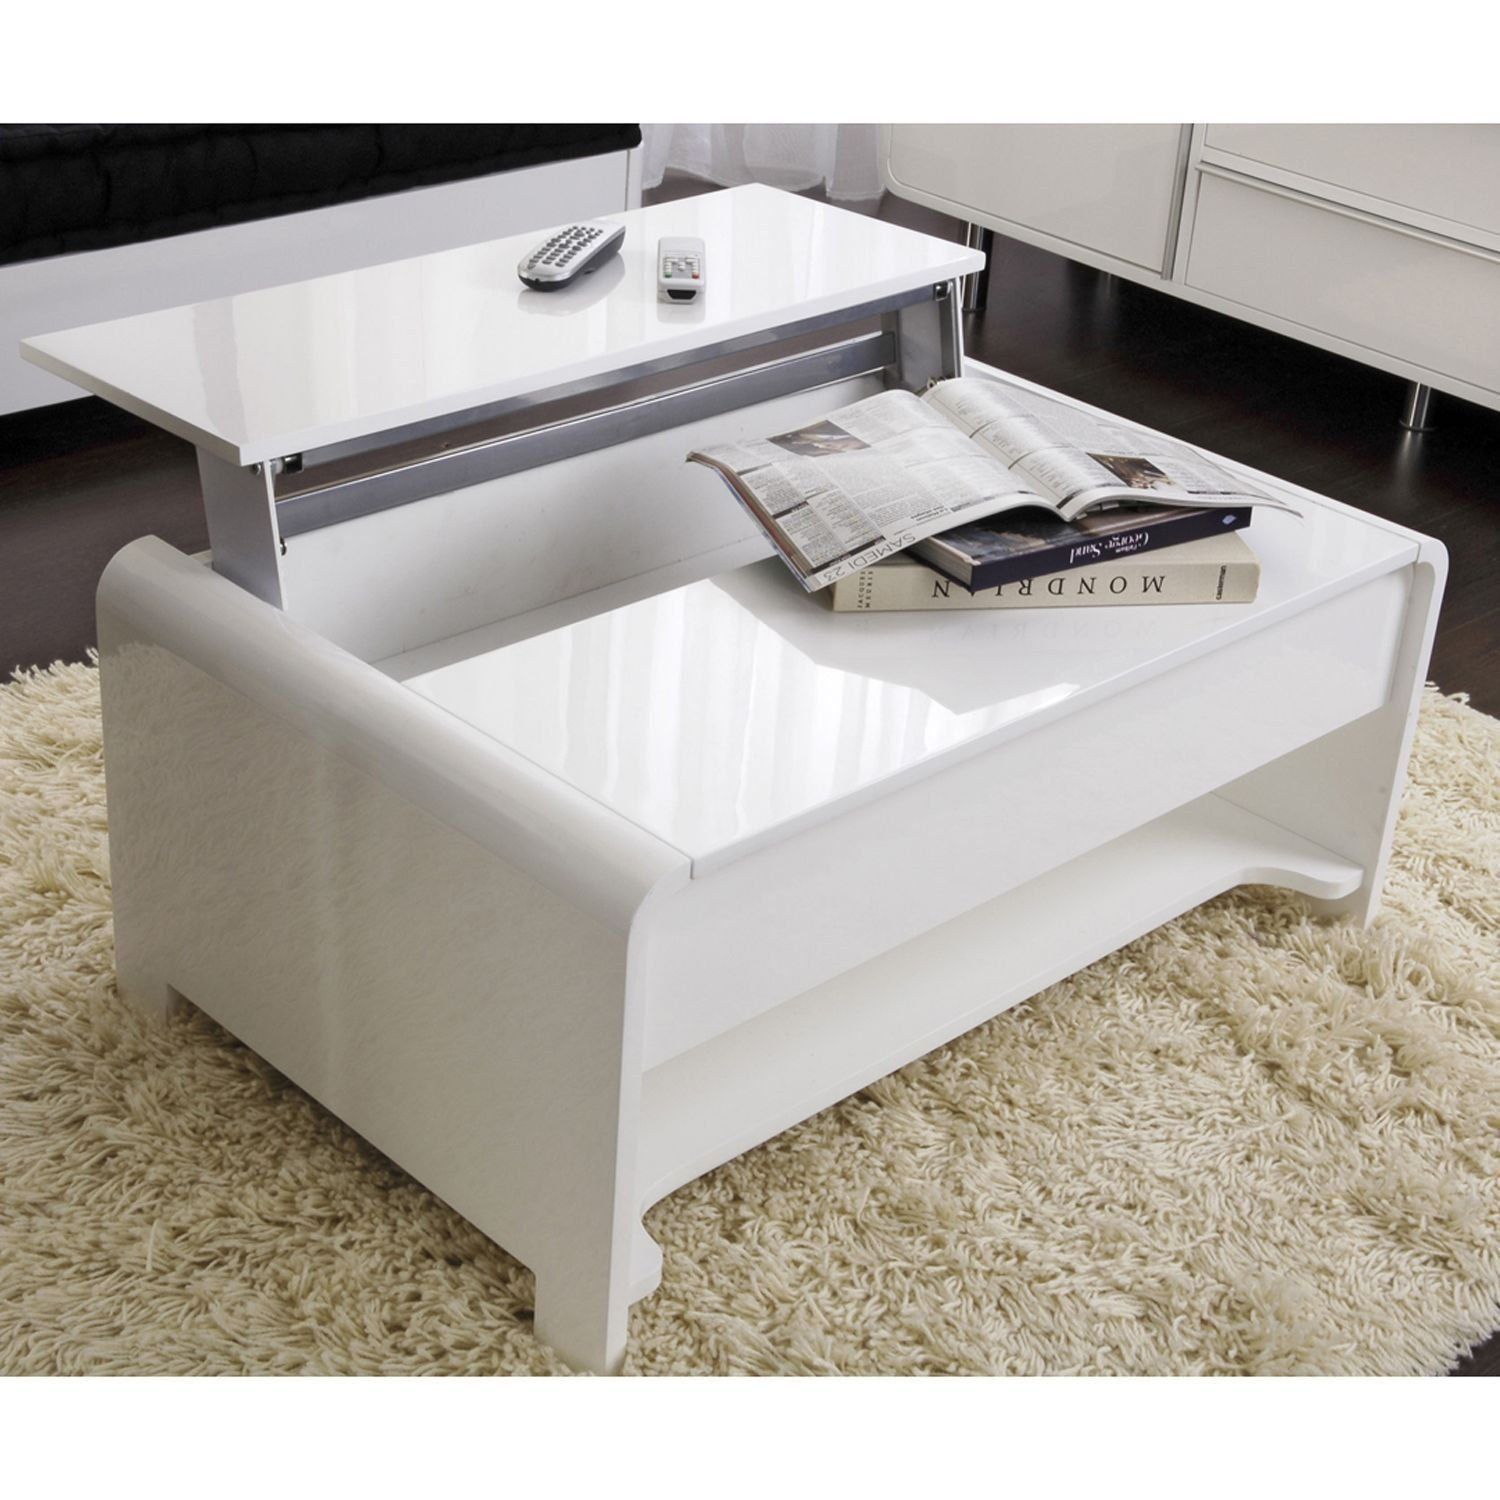 Table Basse Rectangulaire Laquee Longueur 90 Cm Largeur 60 Cm Seattle Http Www Delamaison Fr Table Basse Rectangulaire Table Basse Table Basse Blanche